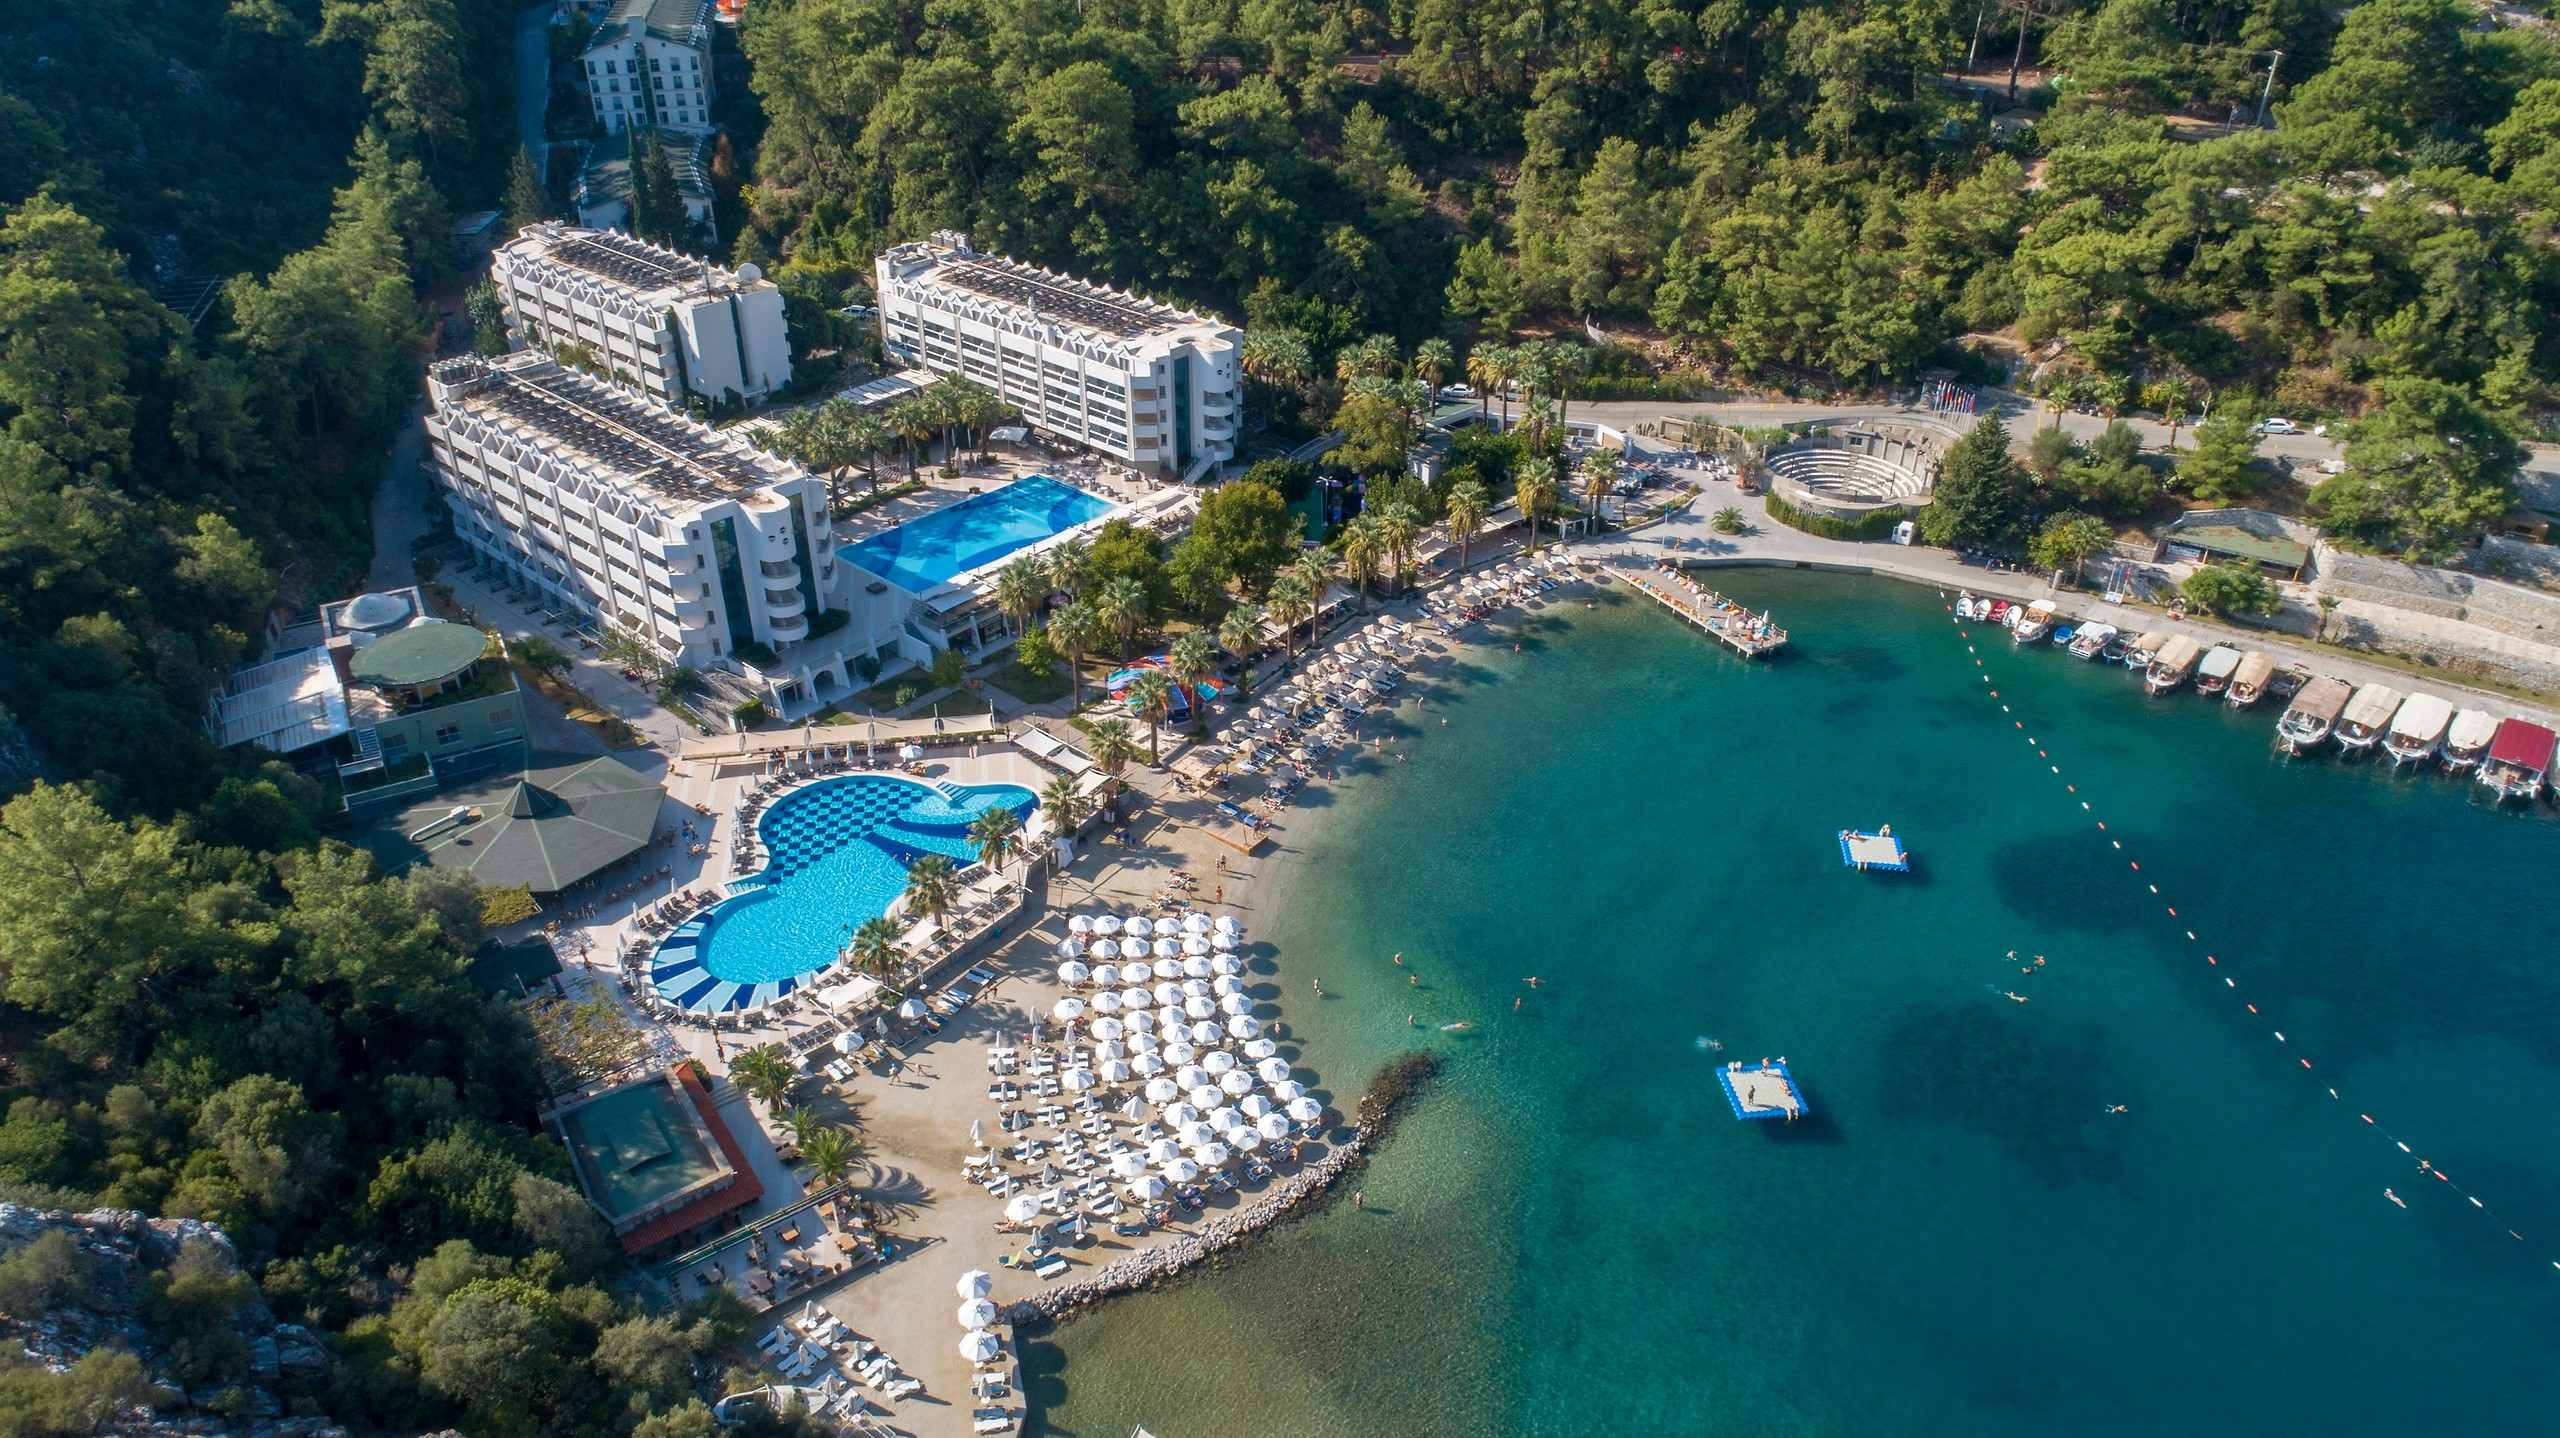 Turunc Resort Otel